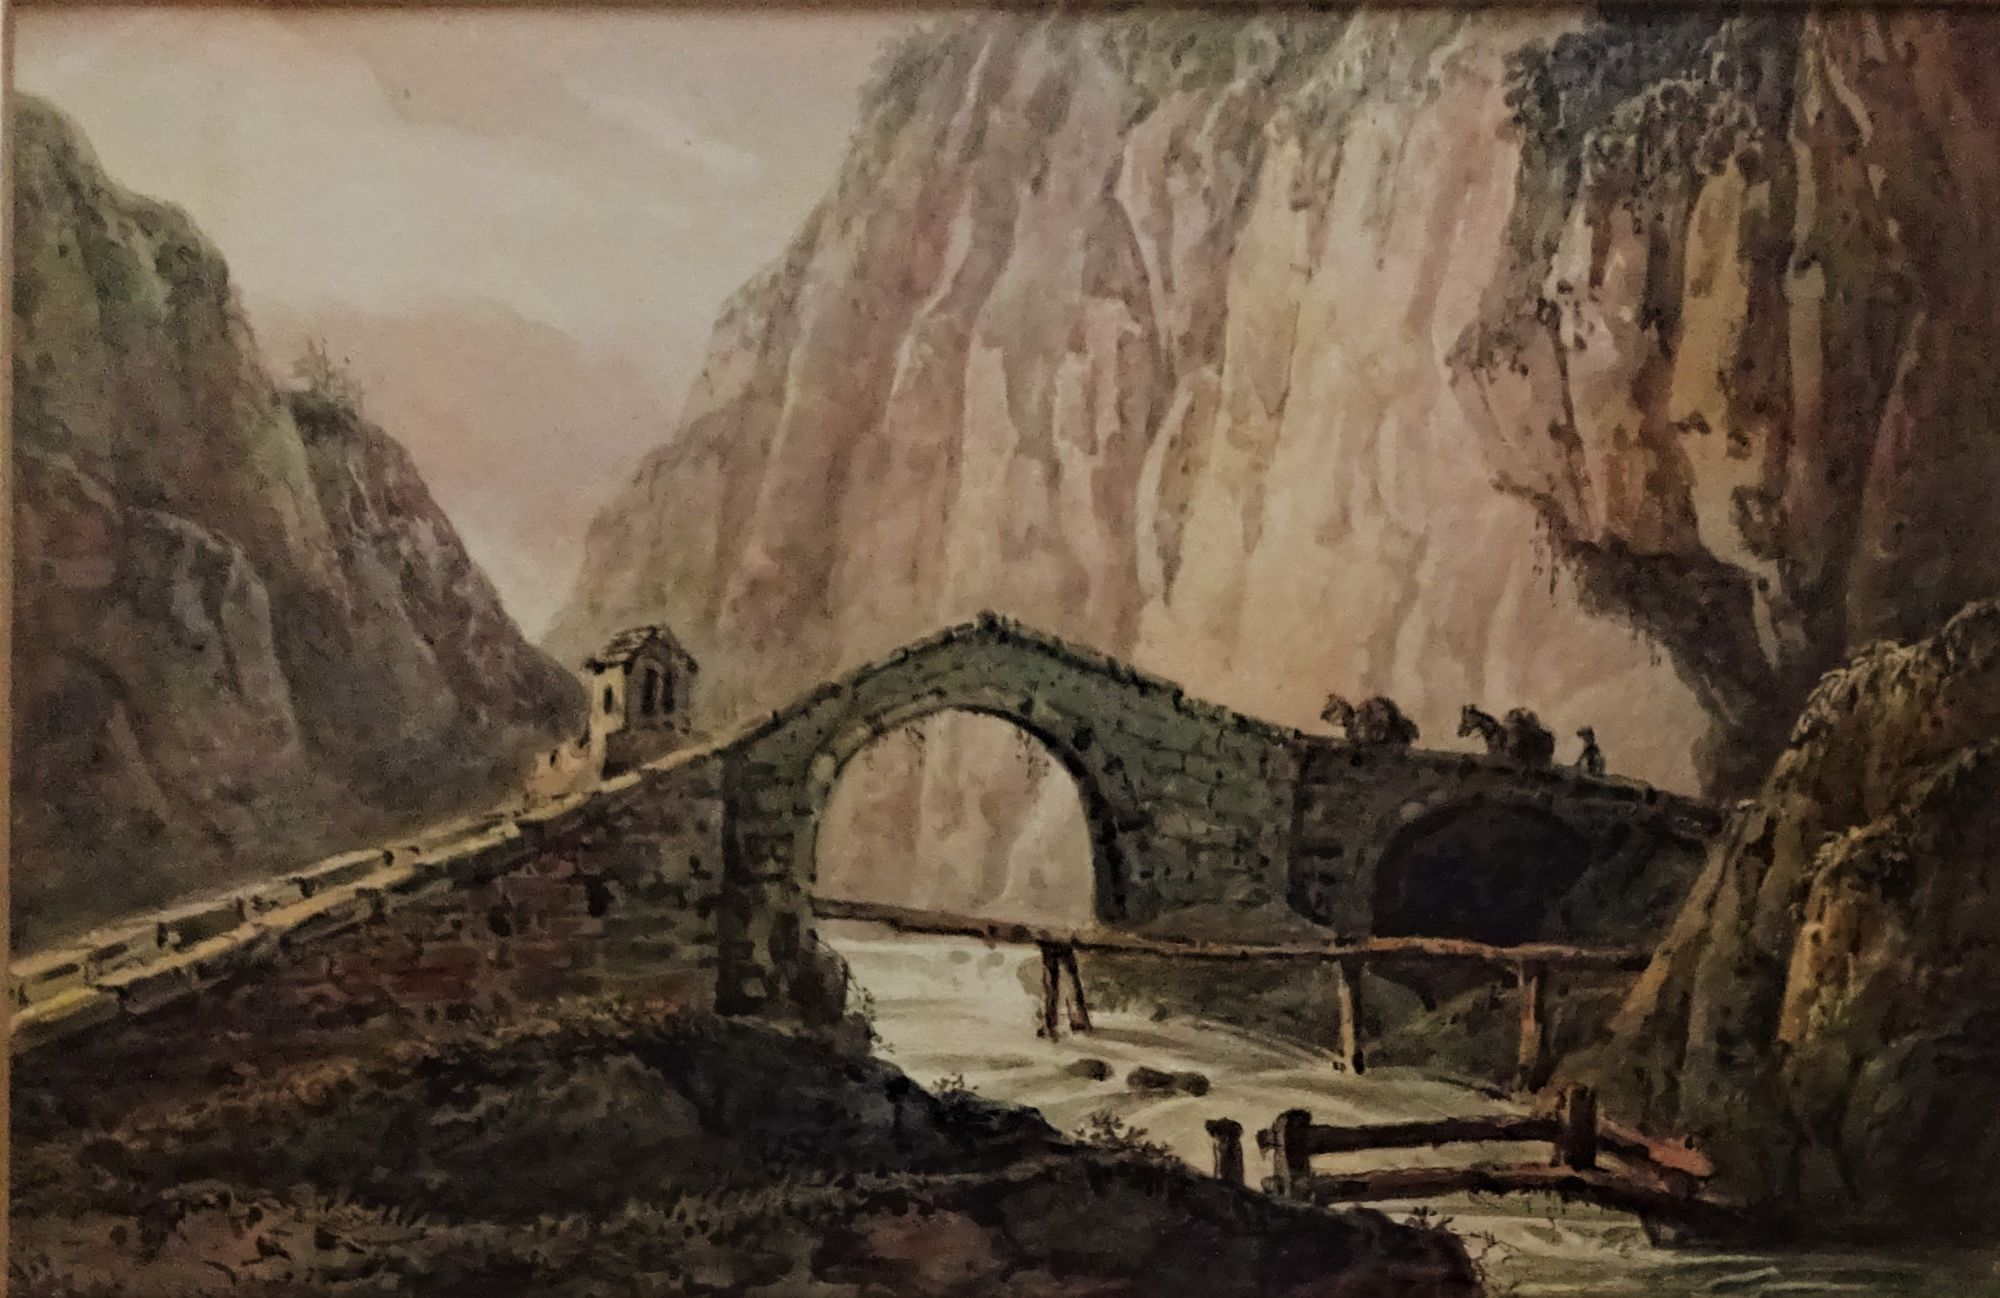 Packhorses crossing Alpine bridge, watercolour, unsigned, c1890. Framed.